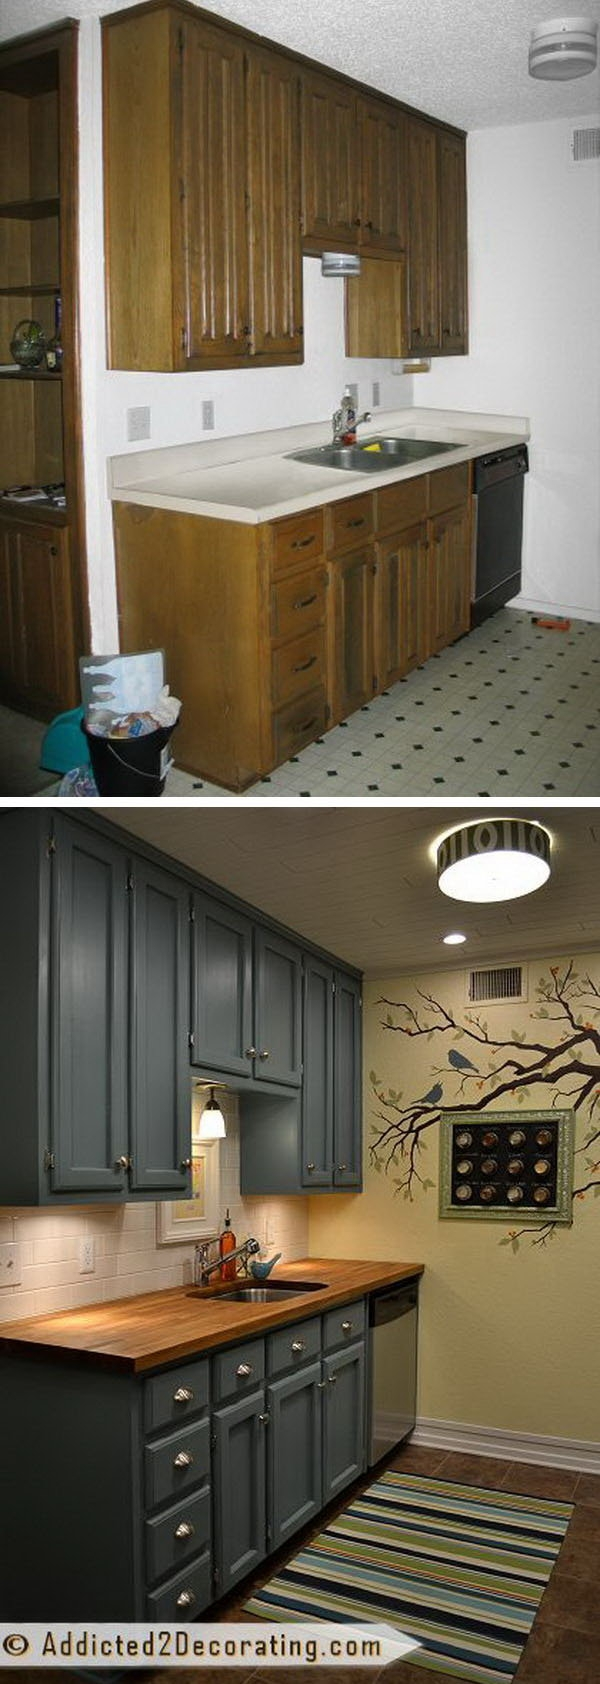 before and after 25 budget friendly kitchen makeover ideas hative